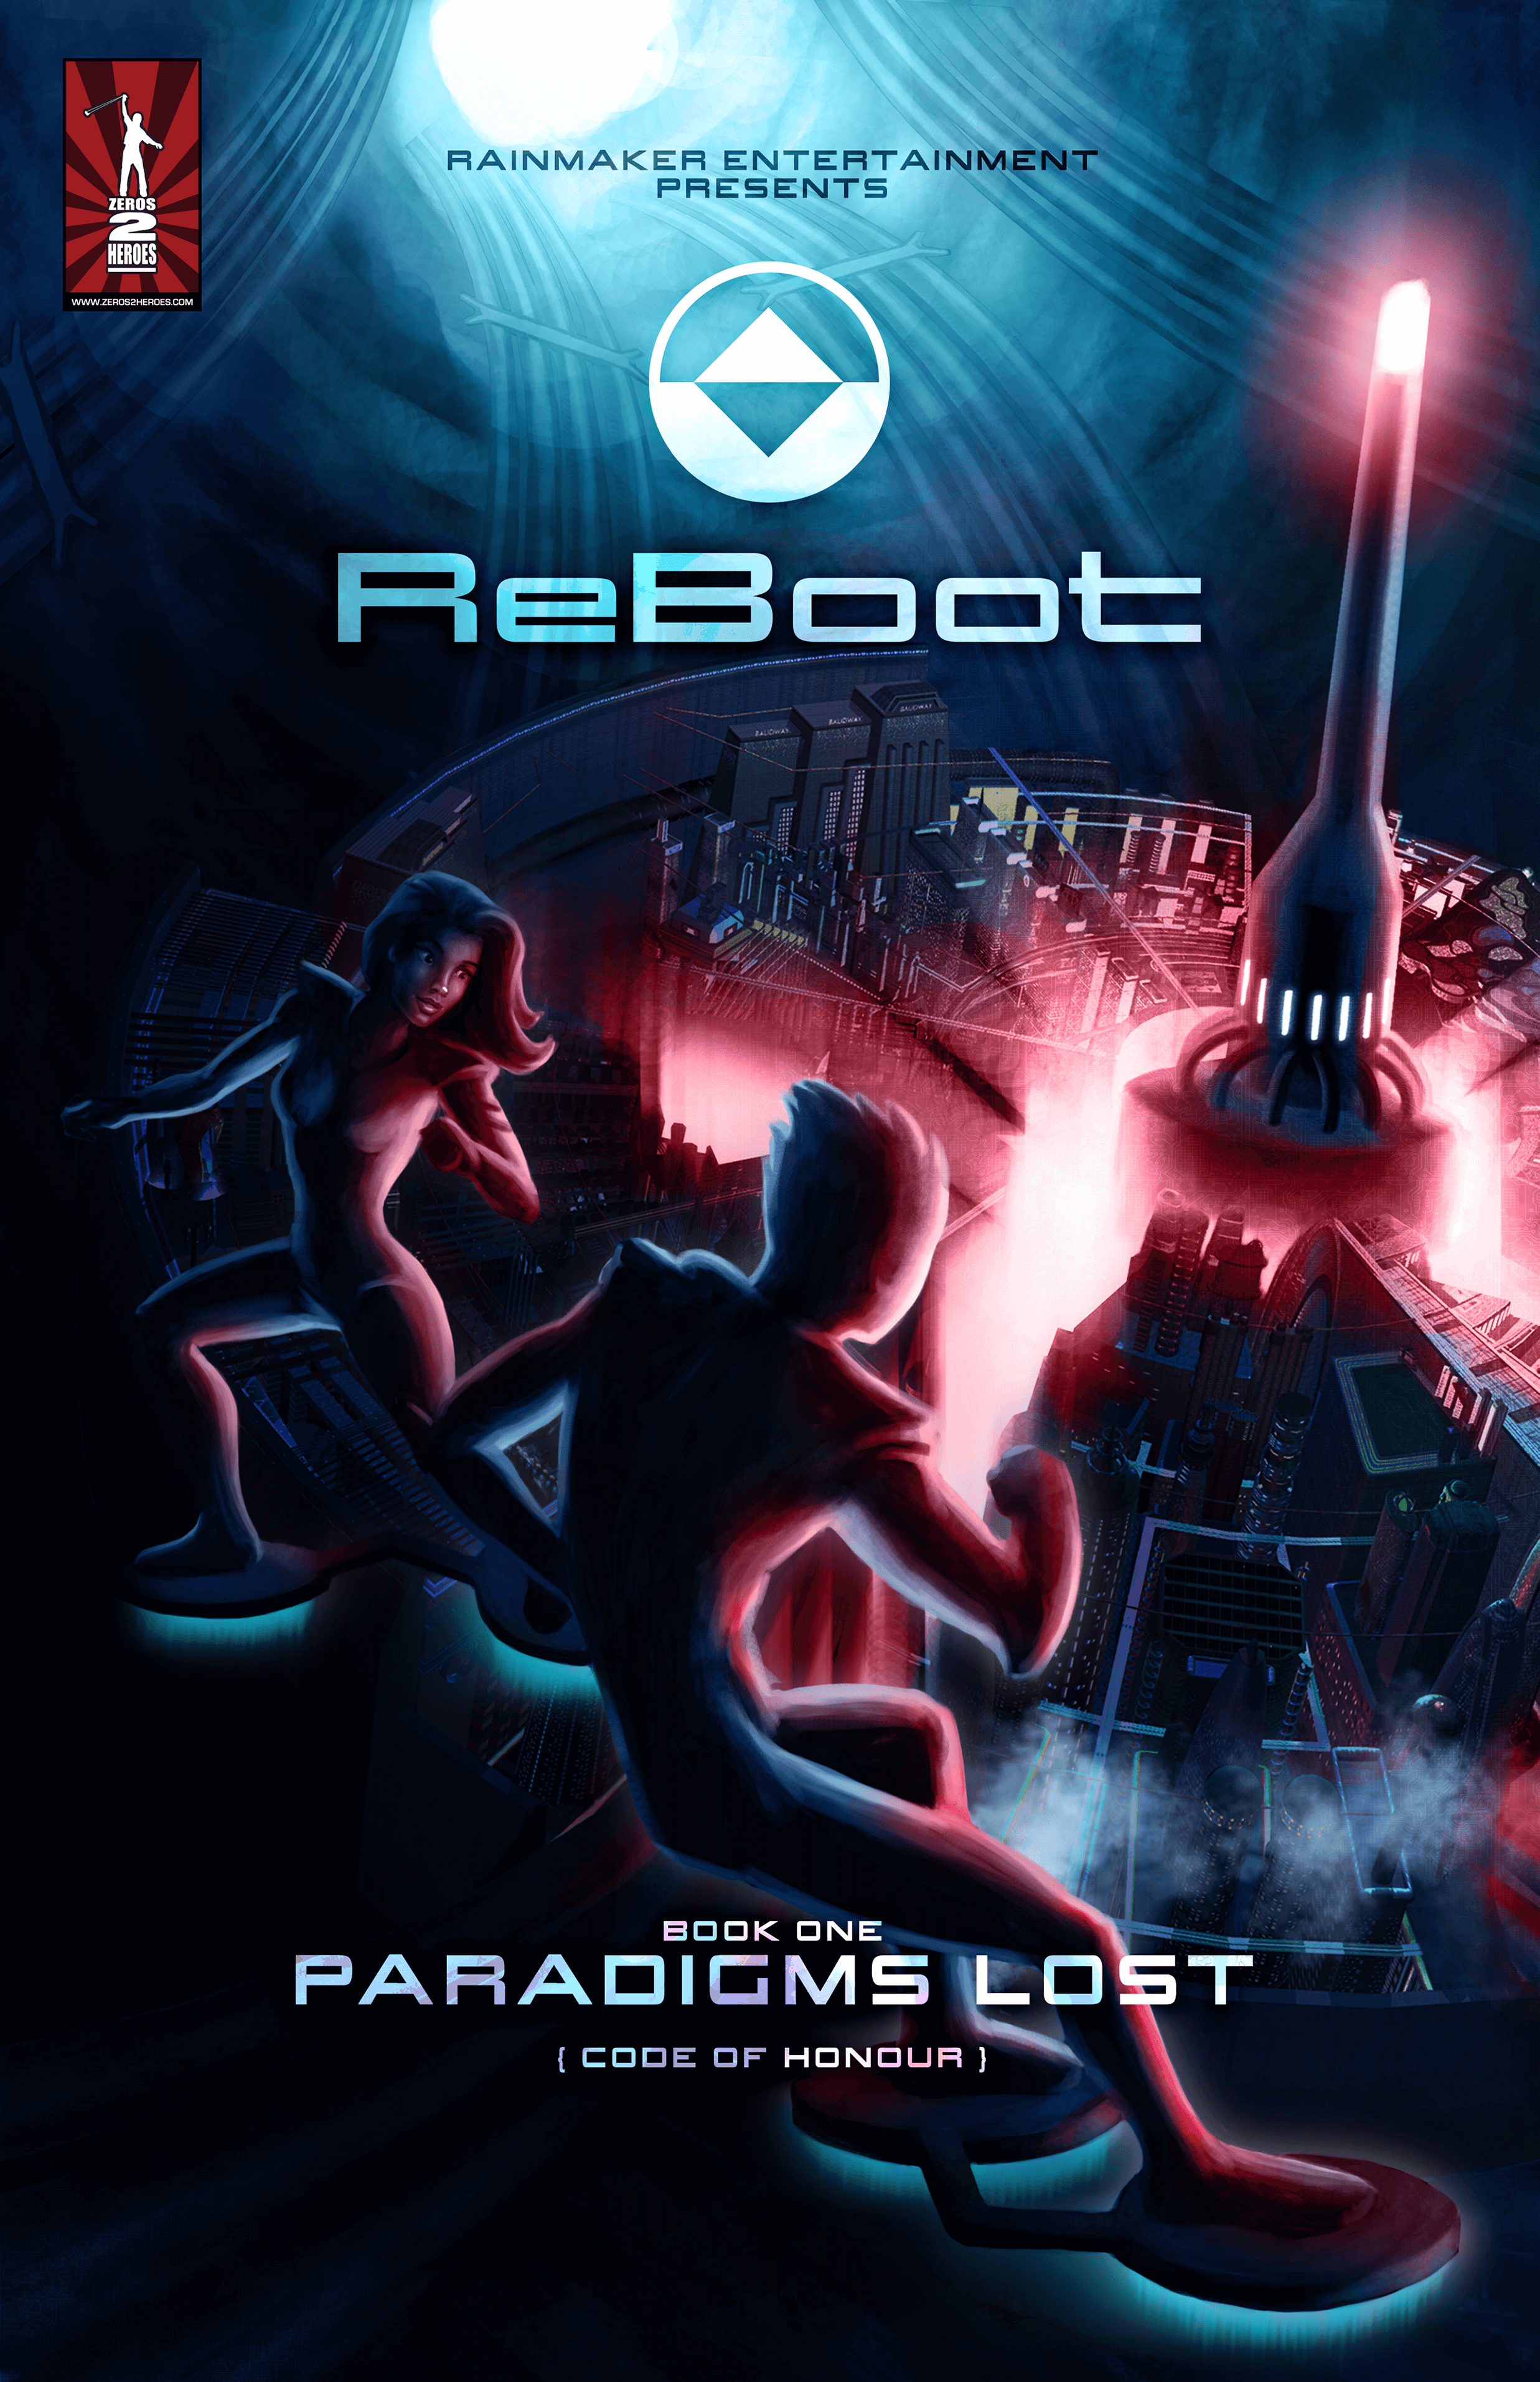 ReBoot-ParadigmsLost-Primary-Cover